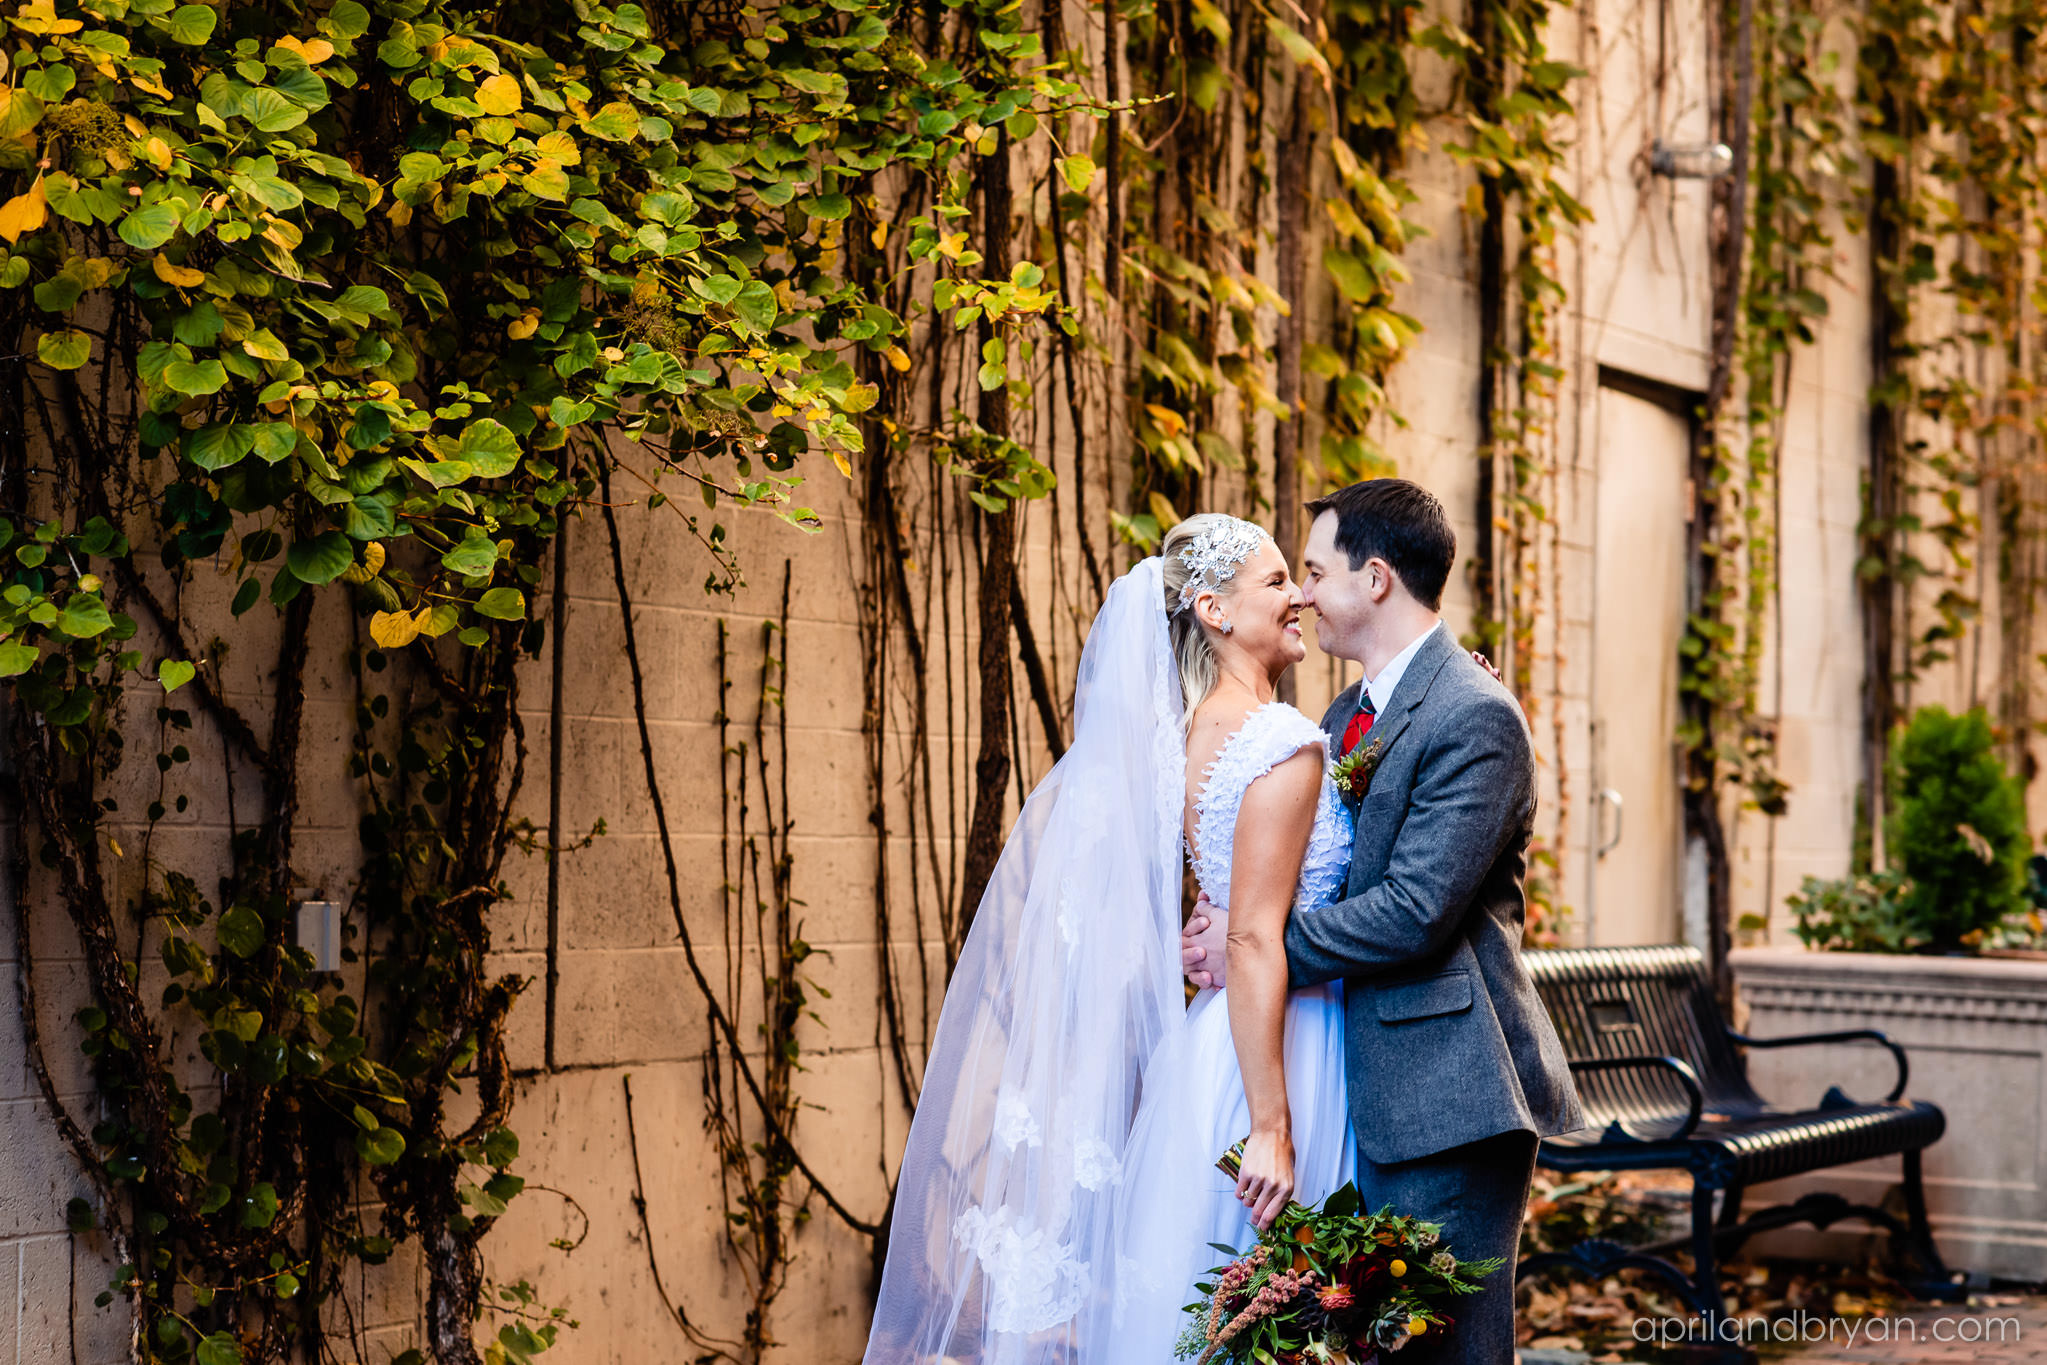 Bride and groom embrace each other before they walk down the isle. The pure white dress contratss the groom's rey blazer. Nicholas and Rebecca Fasnacht tie the not at Tellus360 on November 1, 2019. Captured by April & Bryan Photography and featured on Dream Weddings.